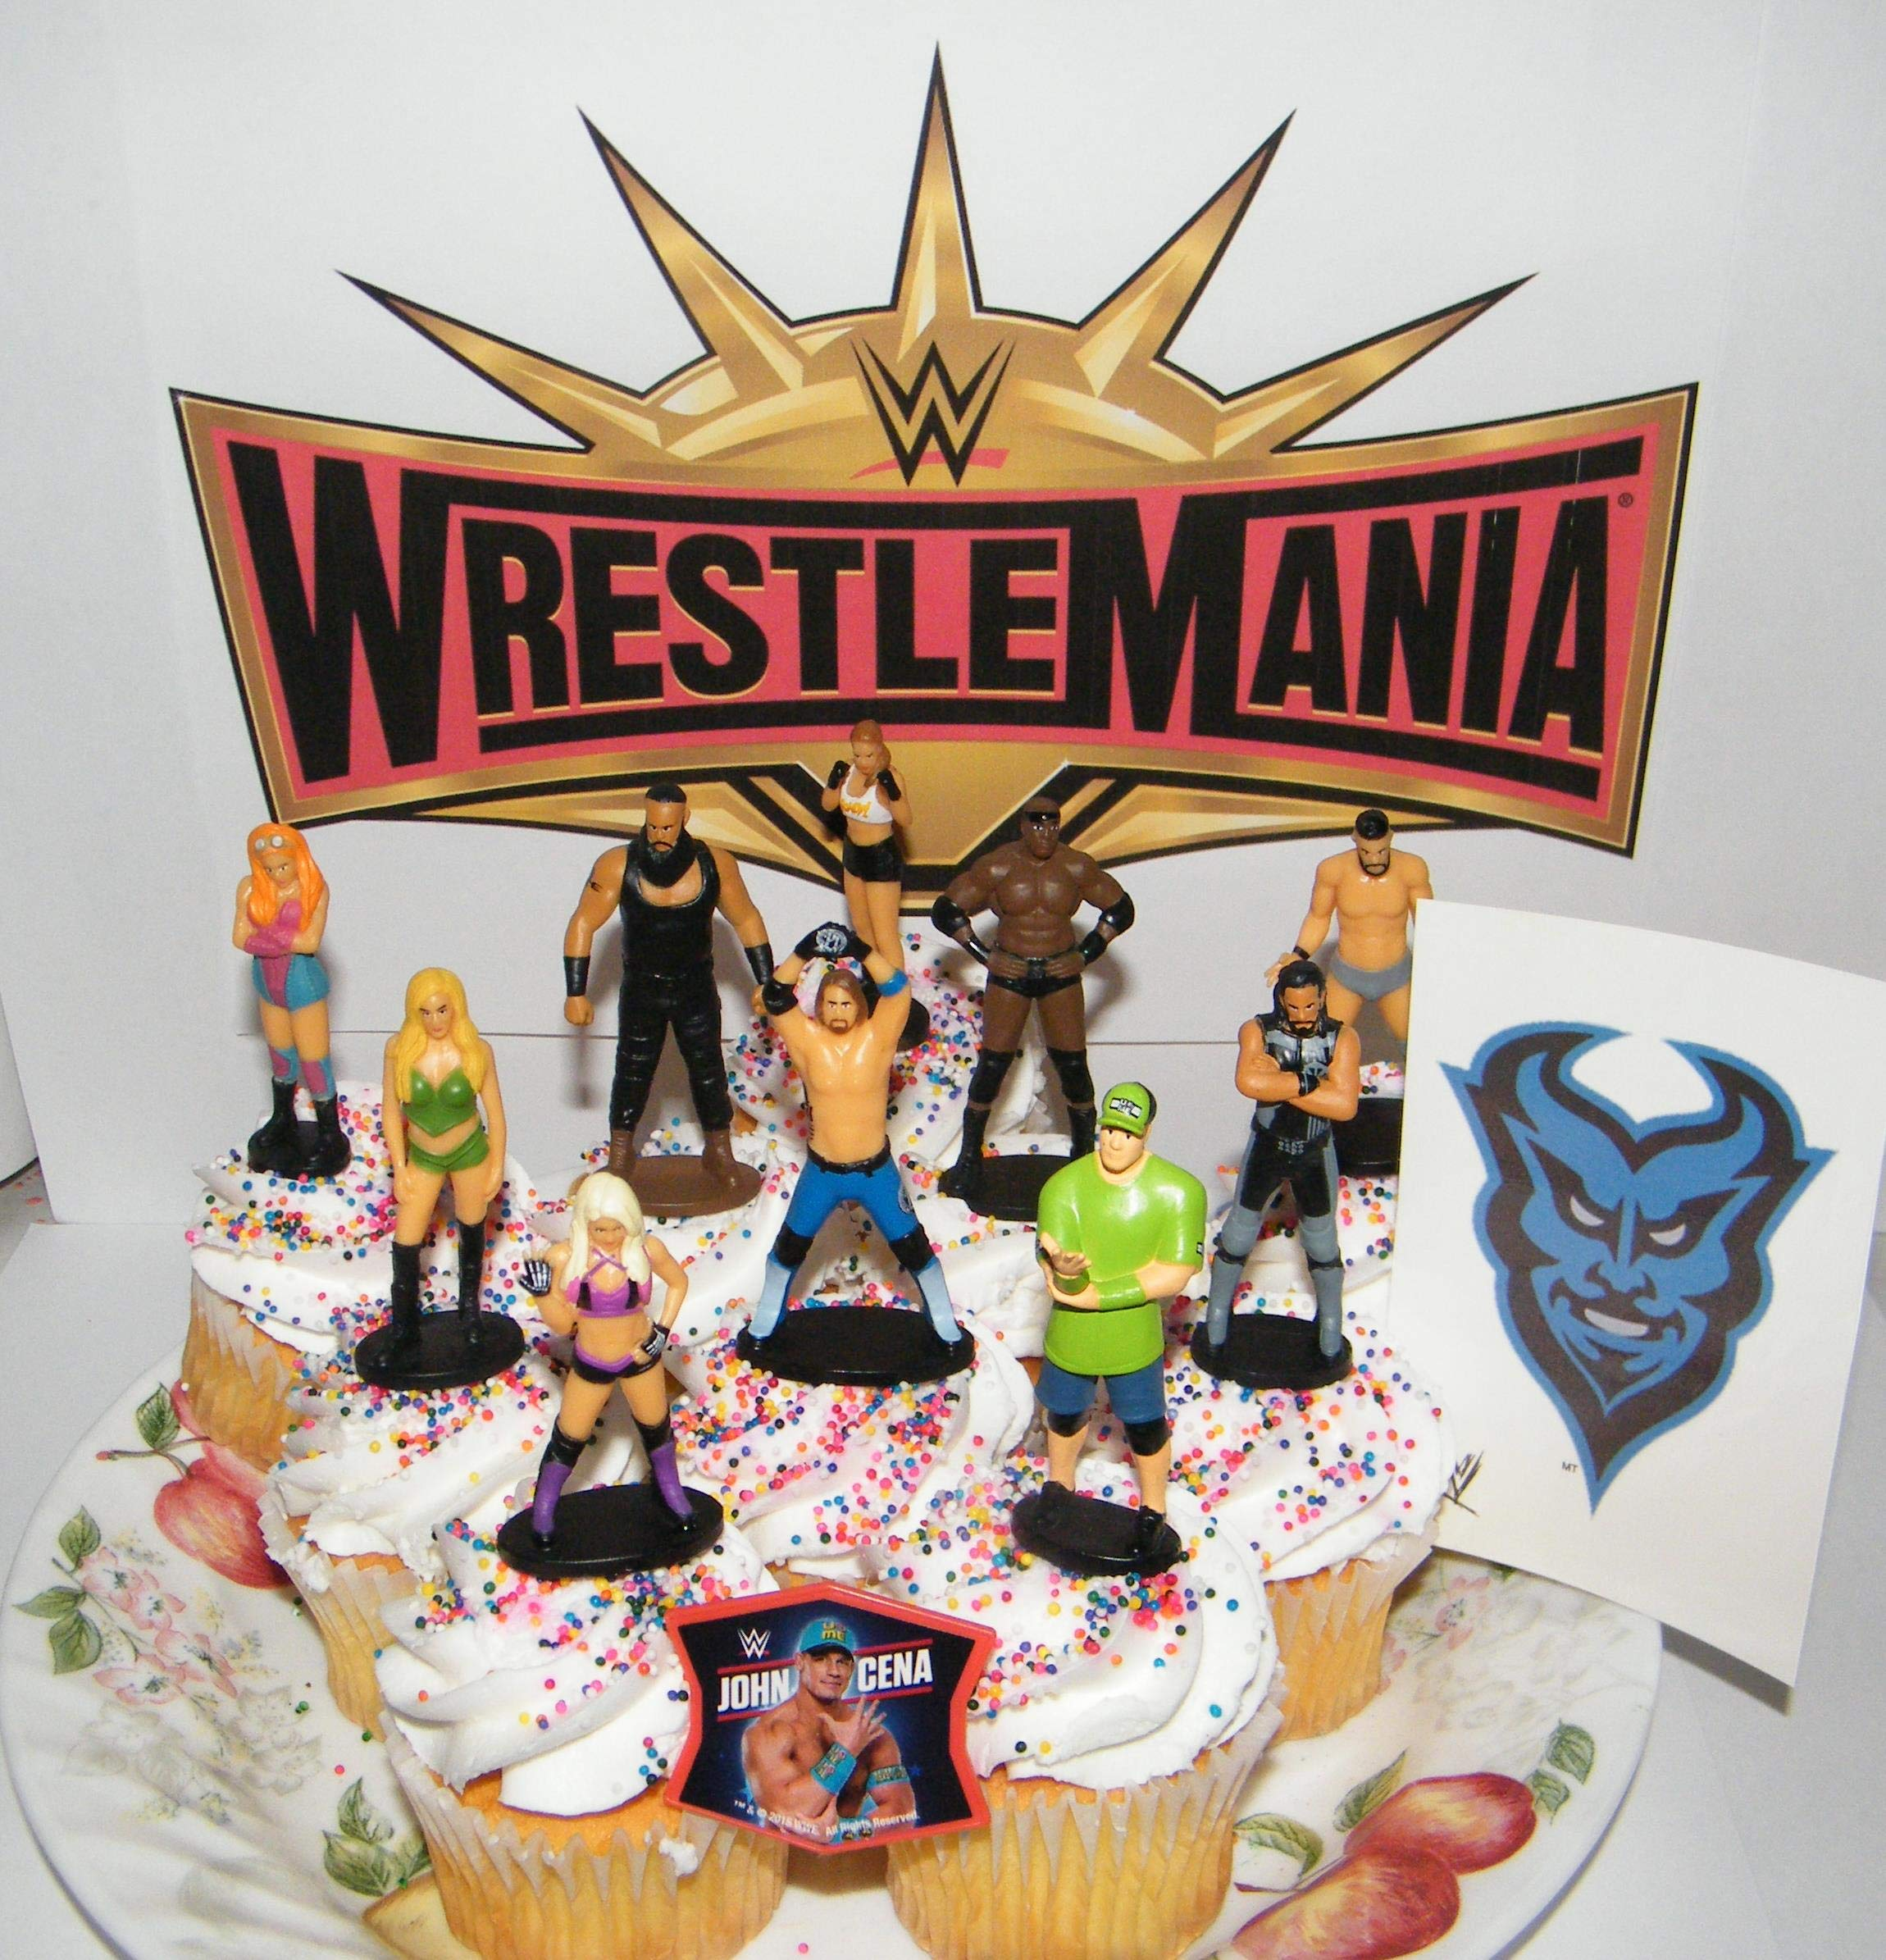 WWE Wrestling Deluxe Cake Toppers Cupcake Decorations Set of 12 with 10 Figures, WWE Tattoo, FingerRing Featuring John Cena, Alexa Bliss and Many More! by BB Inc